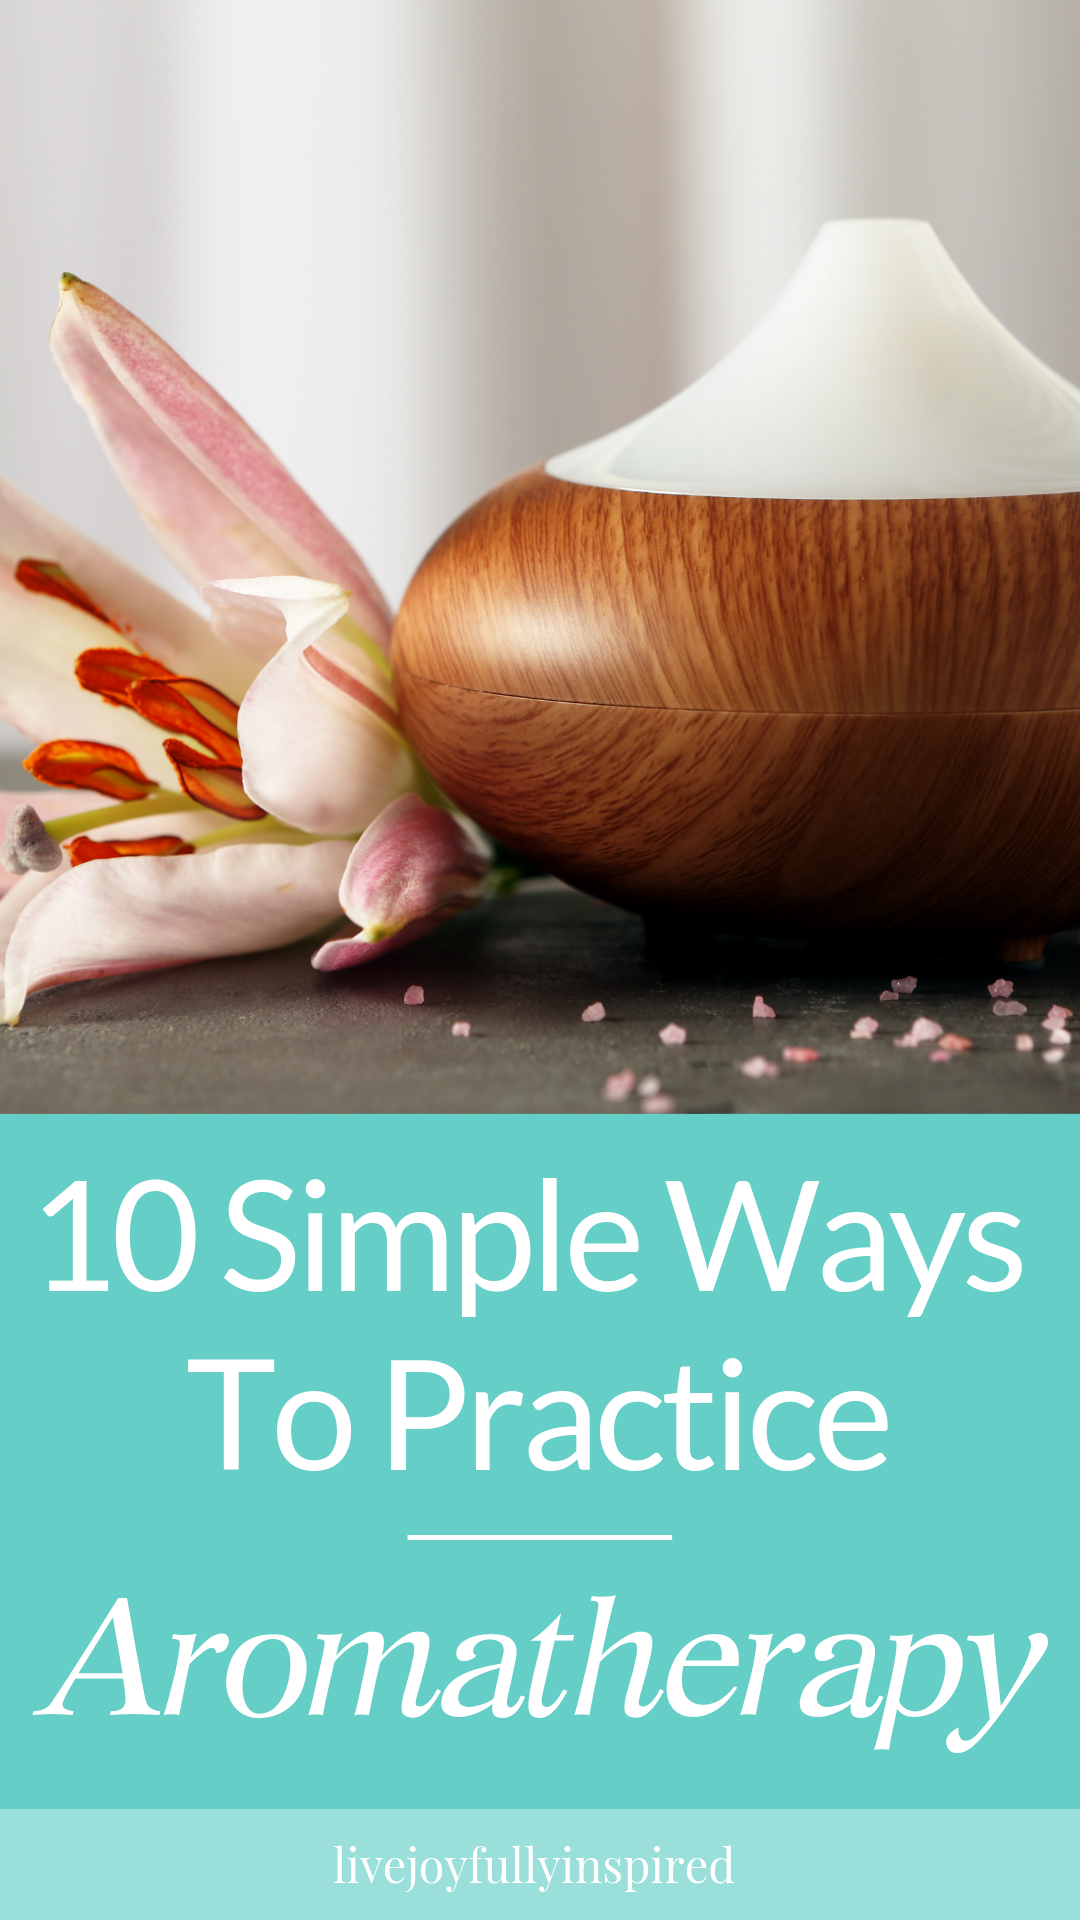 10 simple ways to practice aromatherapy. Many people view relaxation and aromatherapy as just lighting candles or incense and possibly throwing on some soft music. While this may be true, aromatherapy is comprised of much more. #aromatherapy #relax #essentialoils